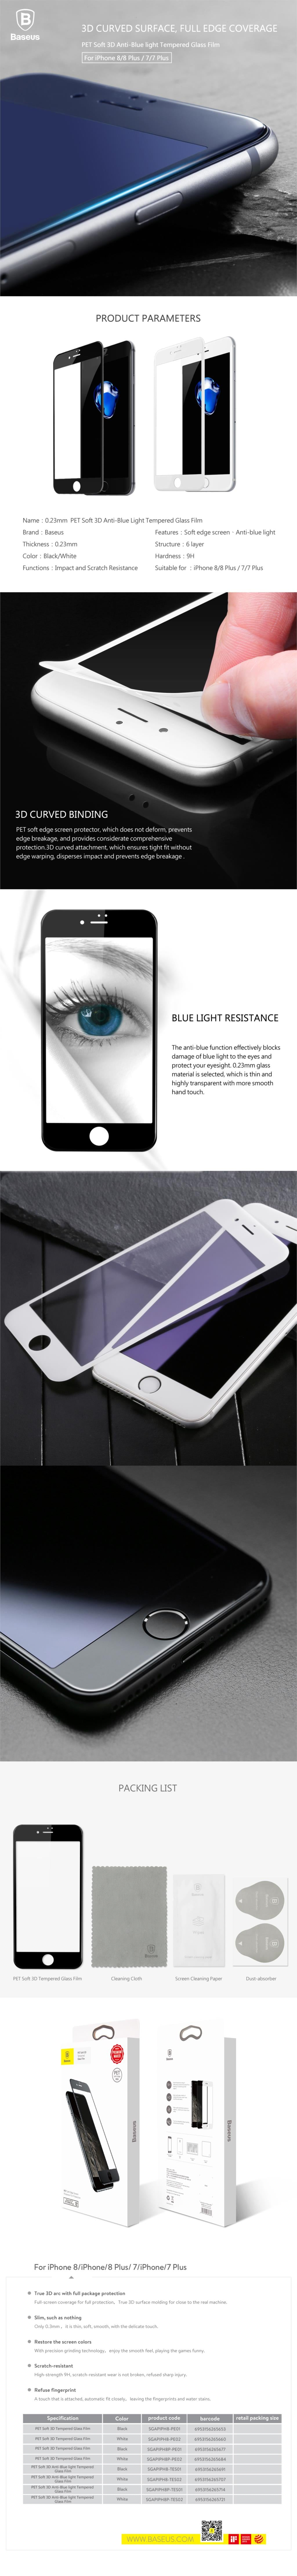 Baseus Screen Protector for I-phone